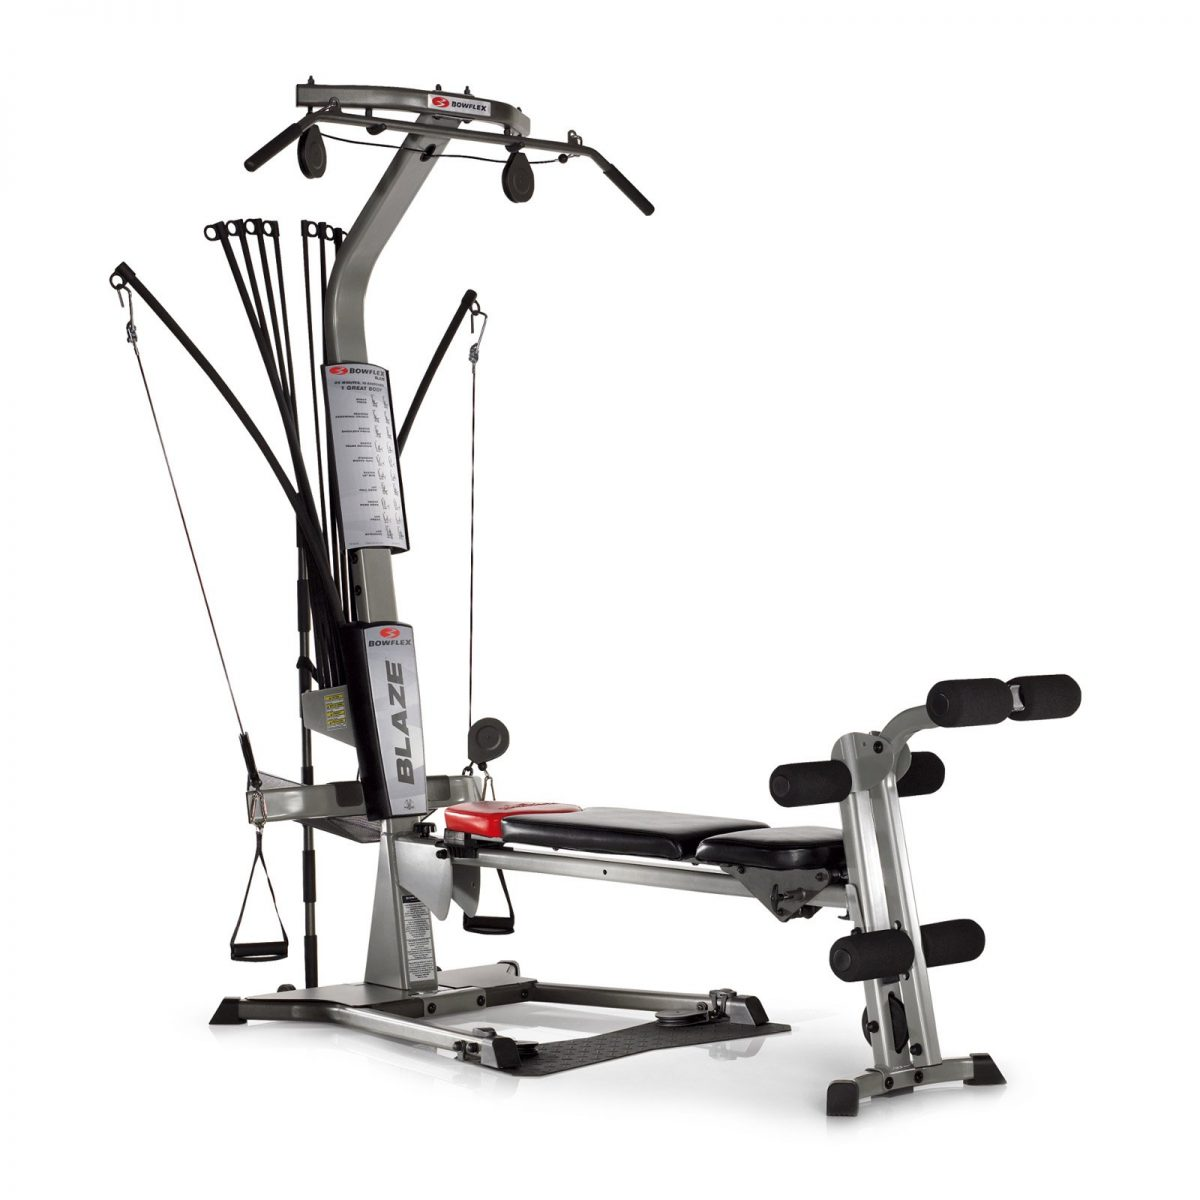 Product image a new grey Bowflex Blaze home gym machine